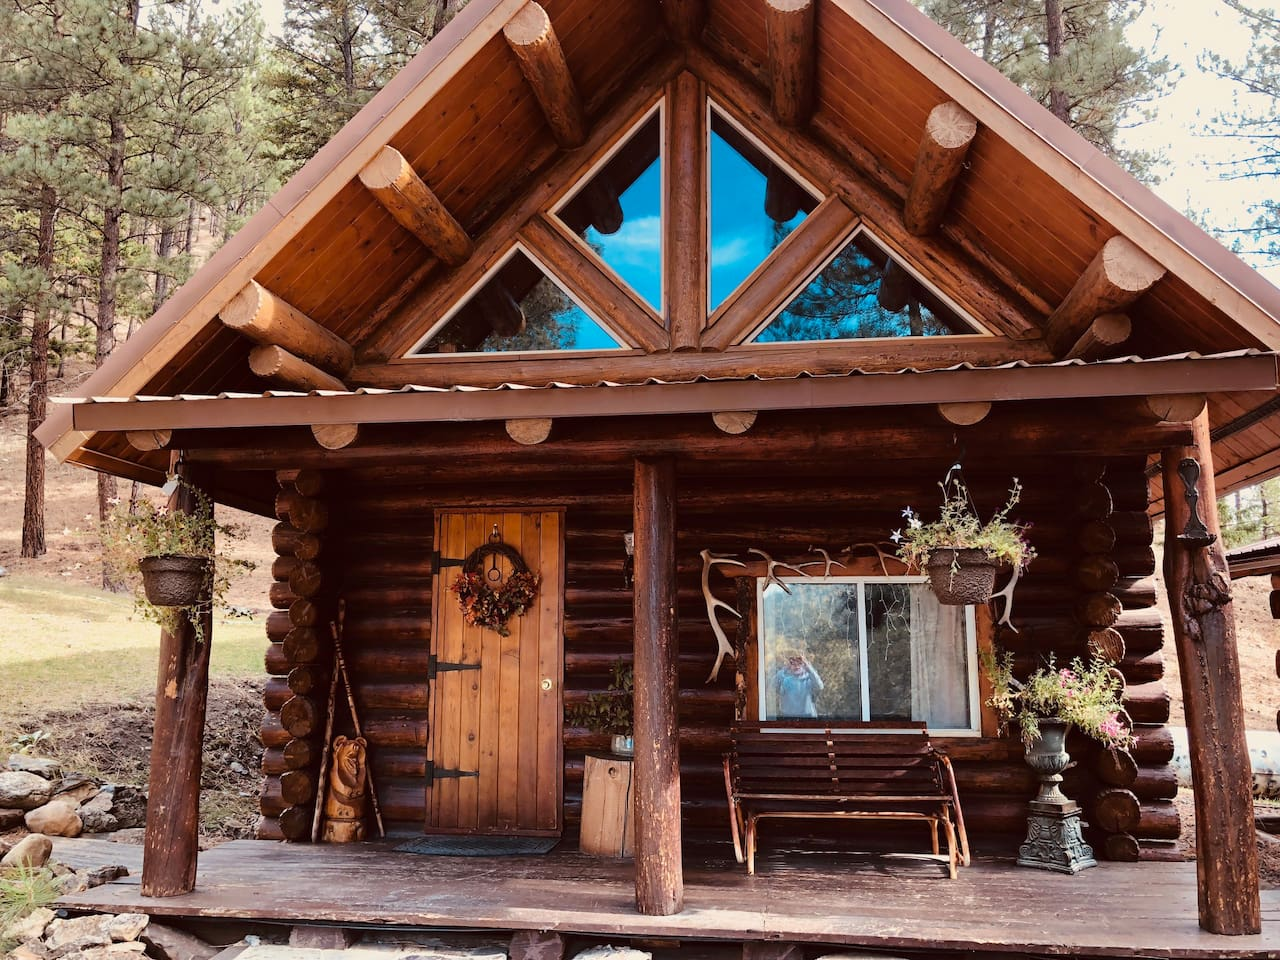 Our custom-built guest cabin lovingly made for our family and friends for generations to come.